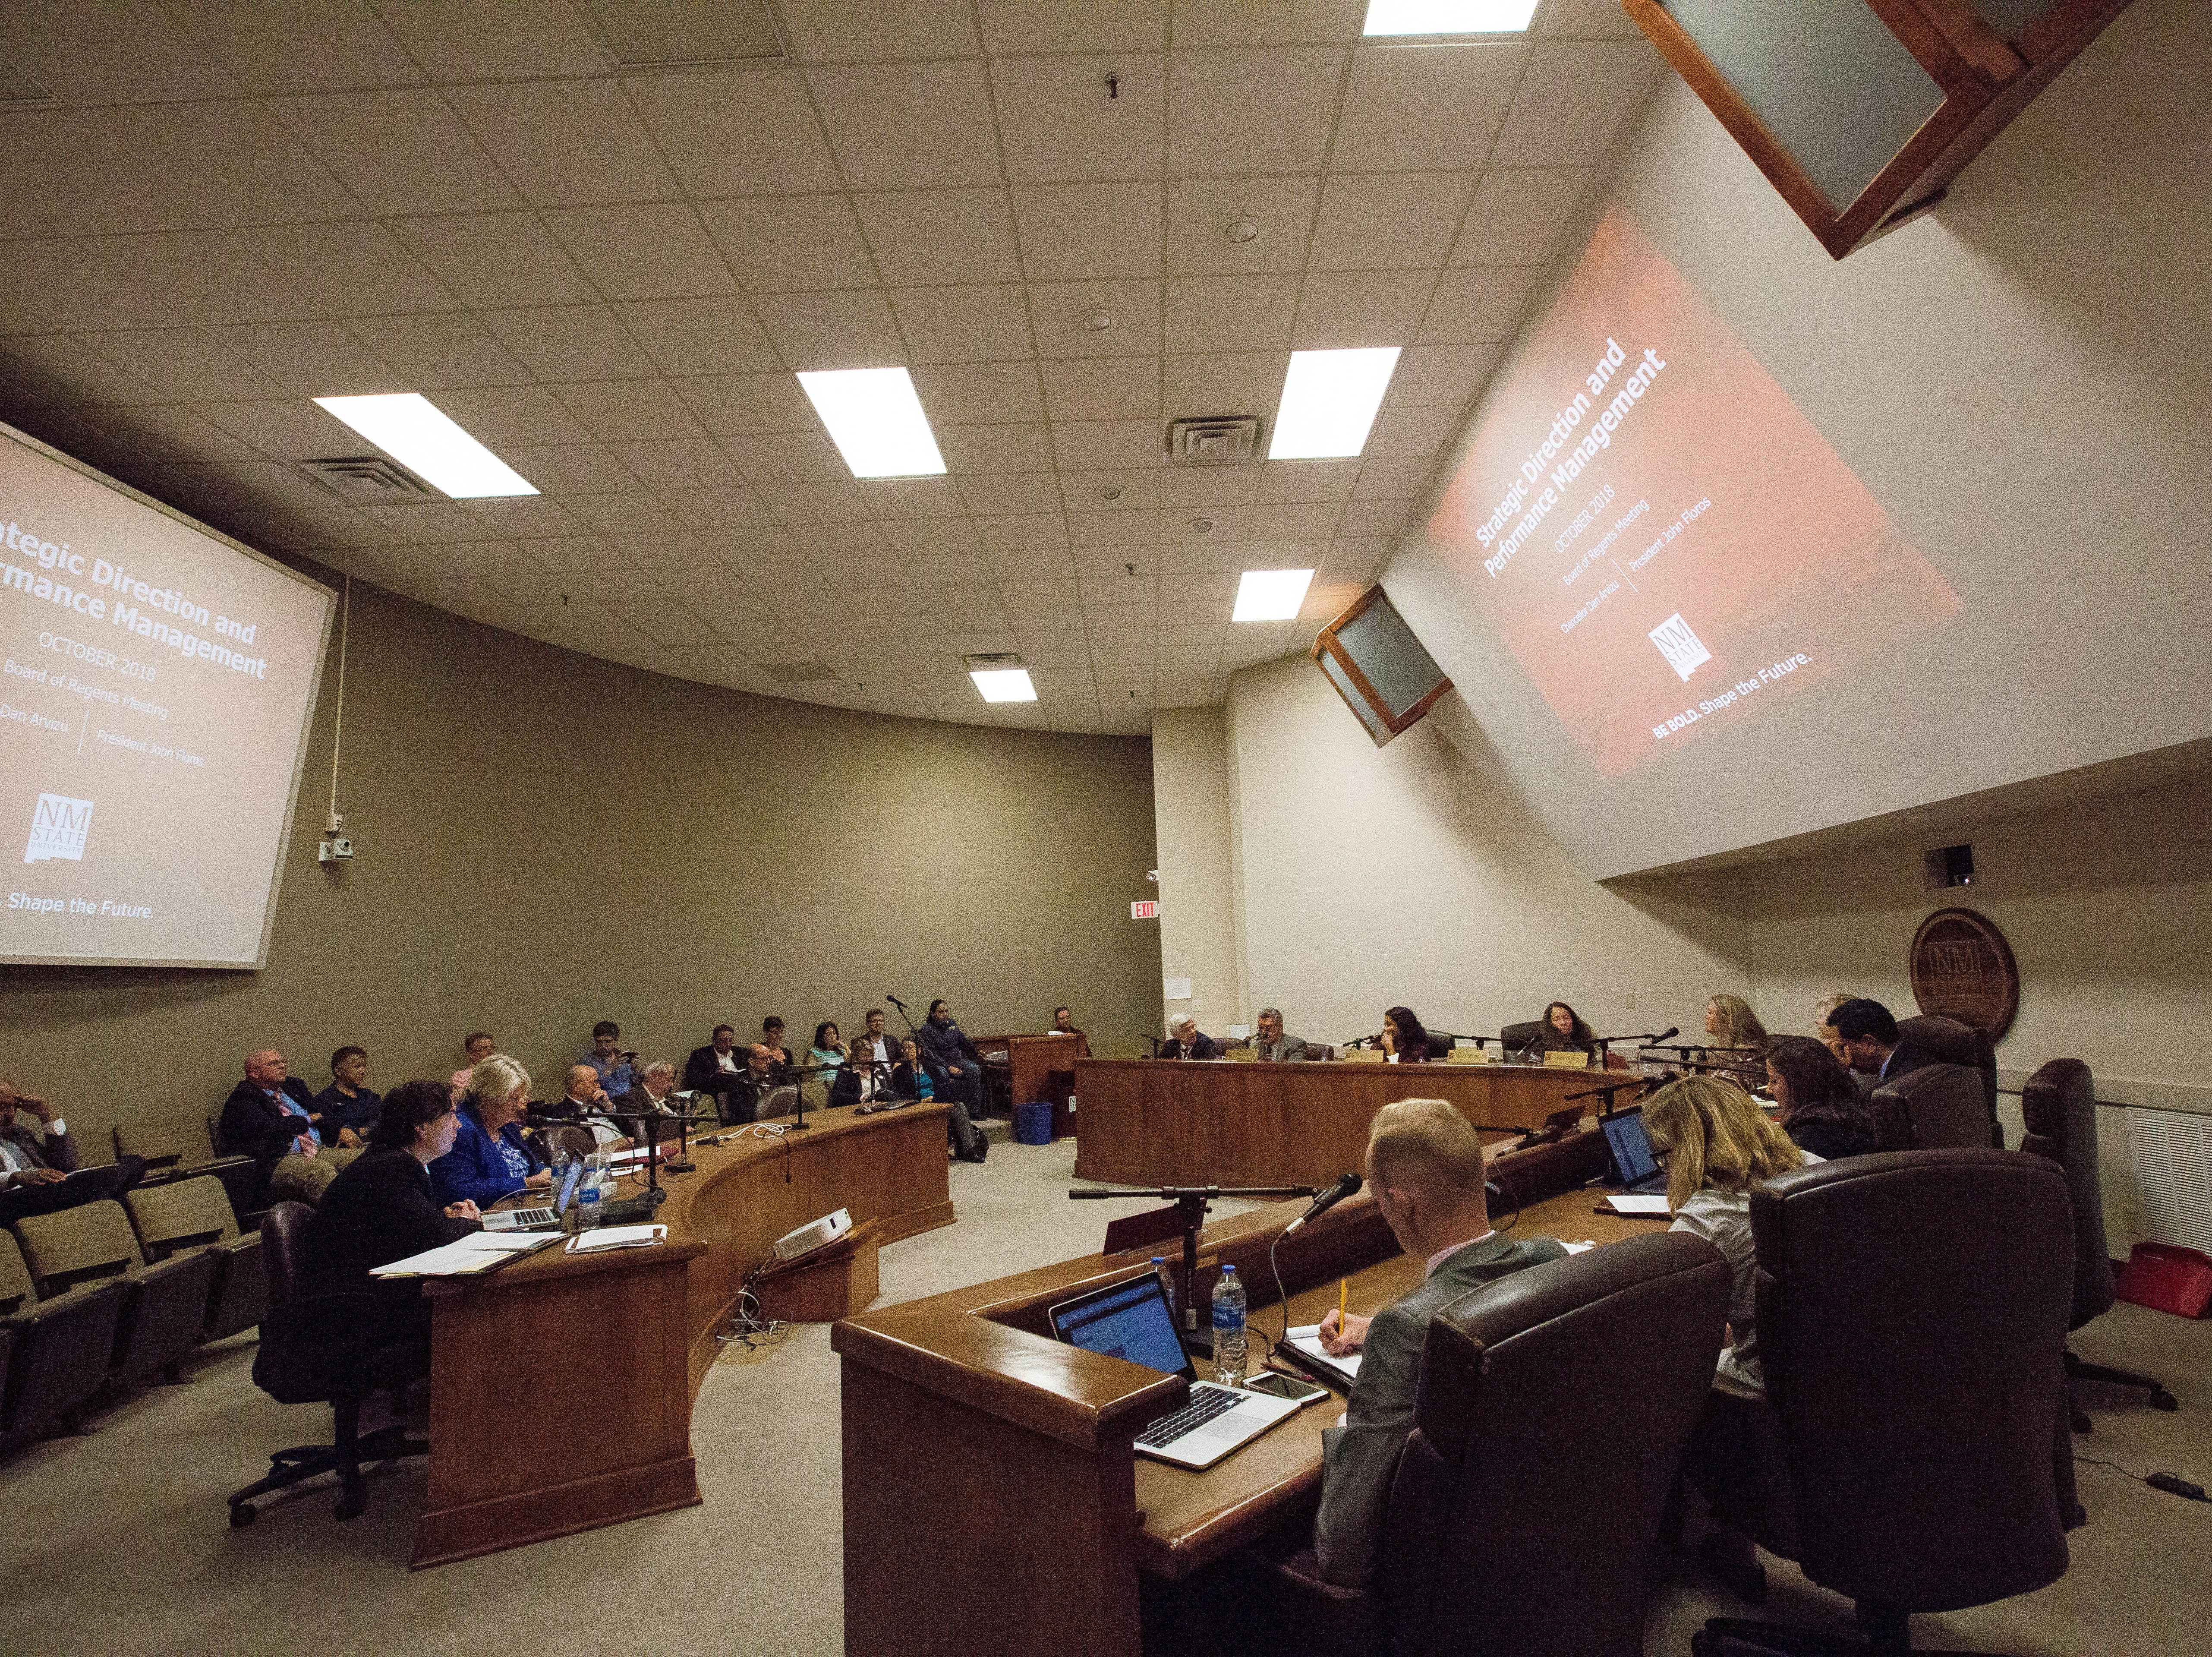 The New Mexico State University Board of Regents look at a presentation of the university's strategic direction and performance management Wednesday October 3, 2018.